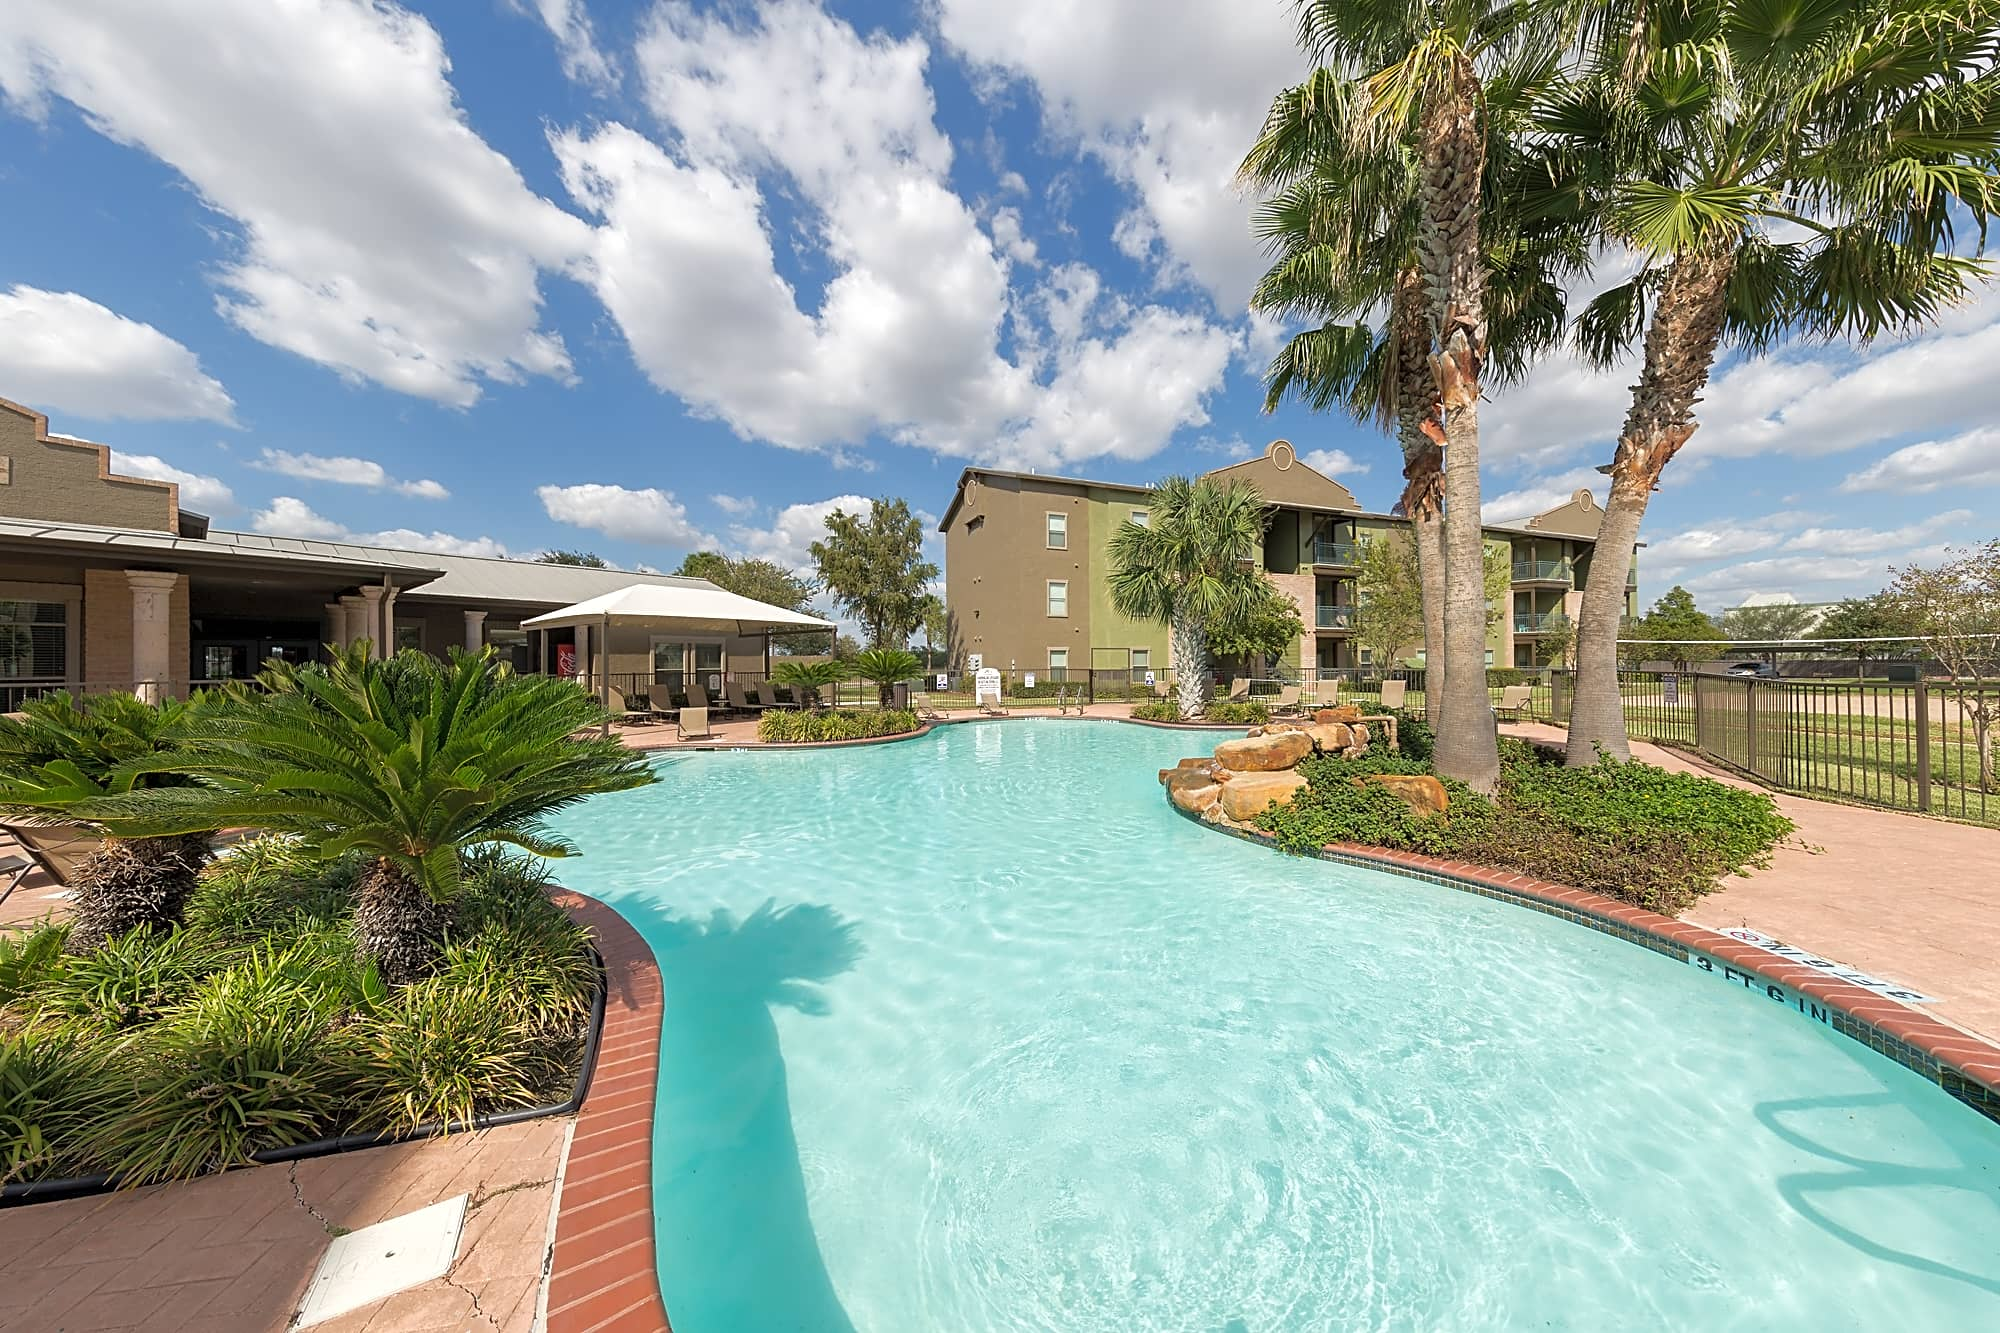 Apartments Near RGV Careers San Pedro Apartments at Sharyland Plantation for RGV Careers Students in Pharr, TX